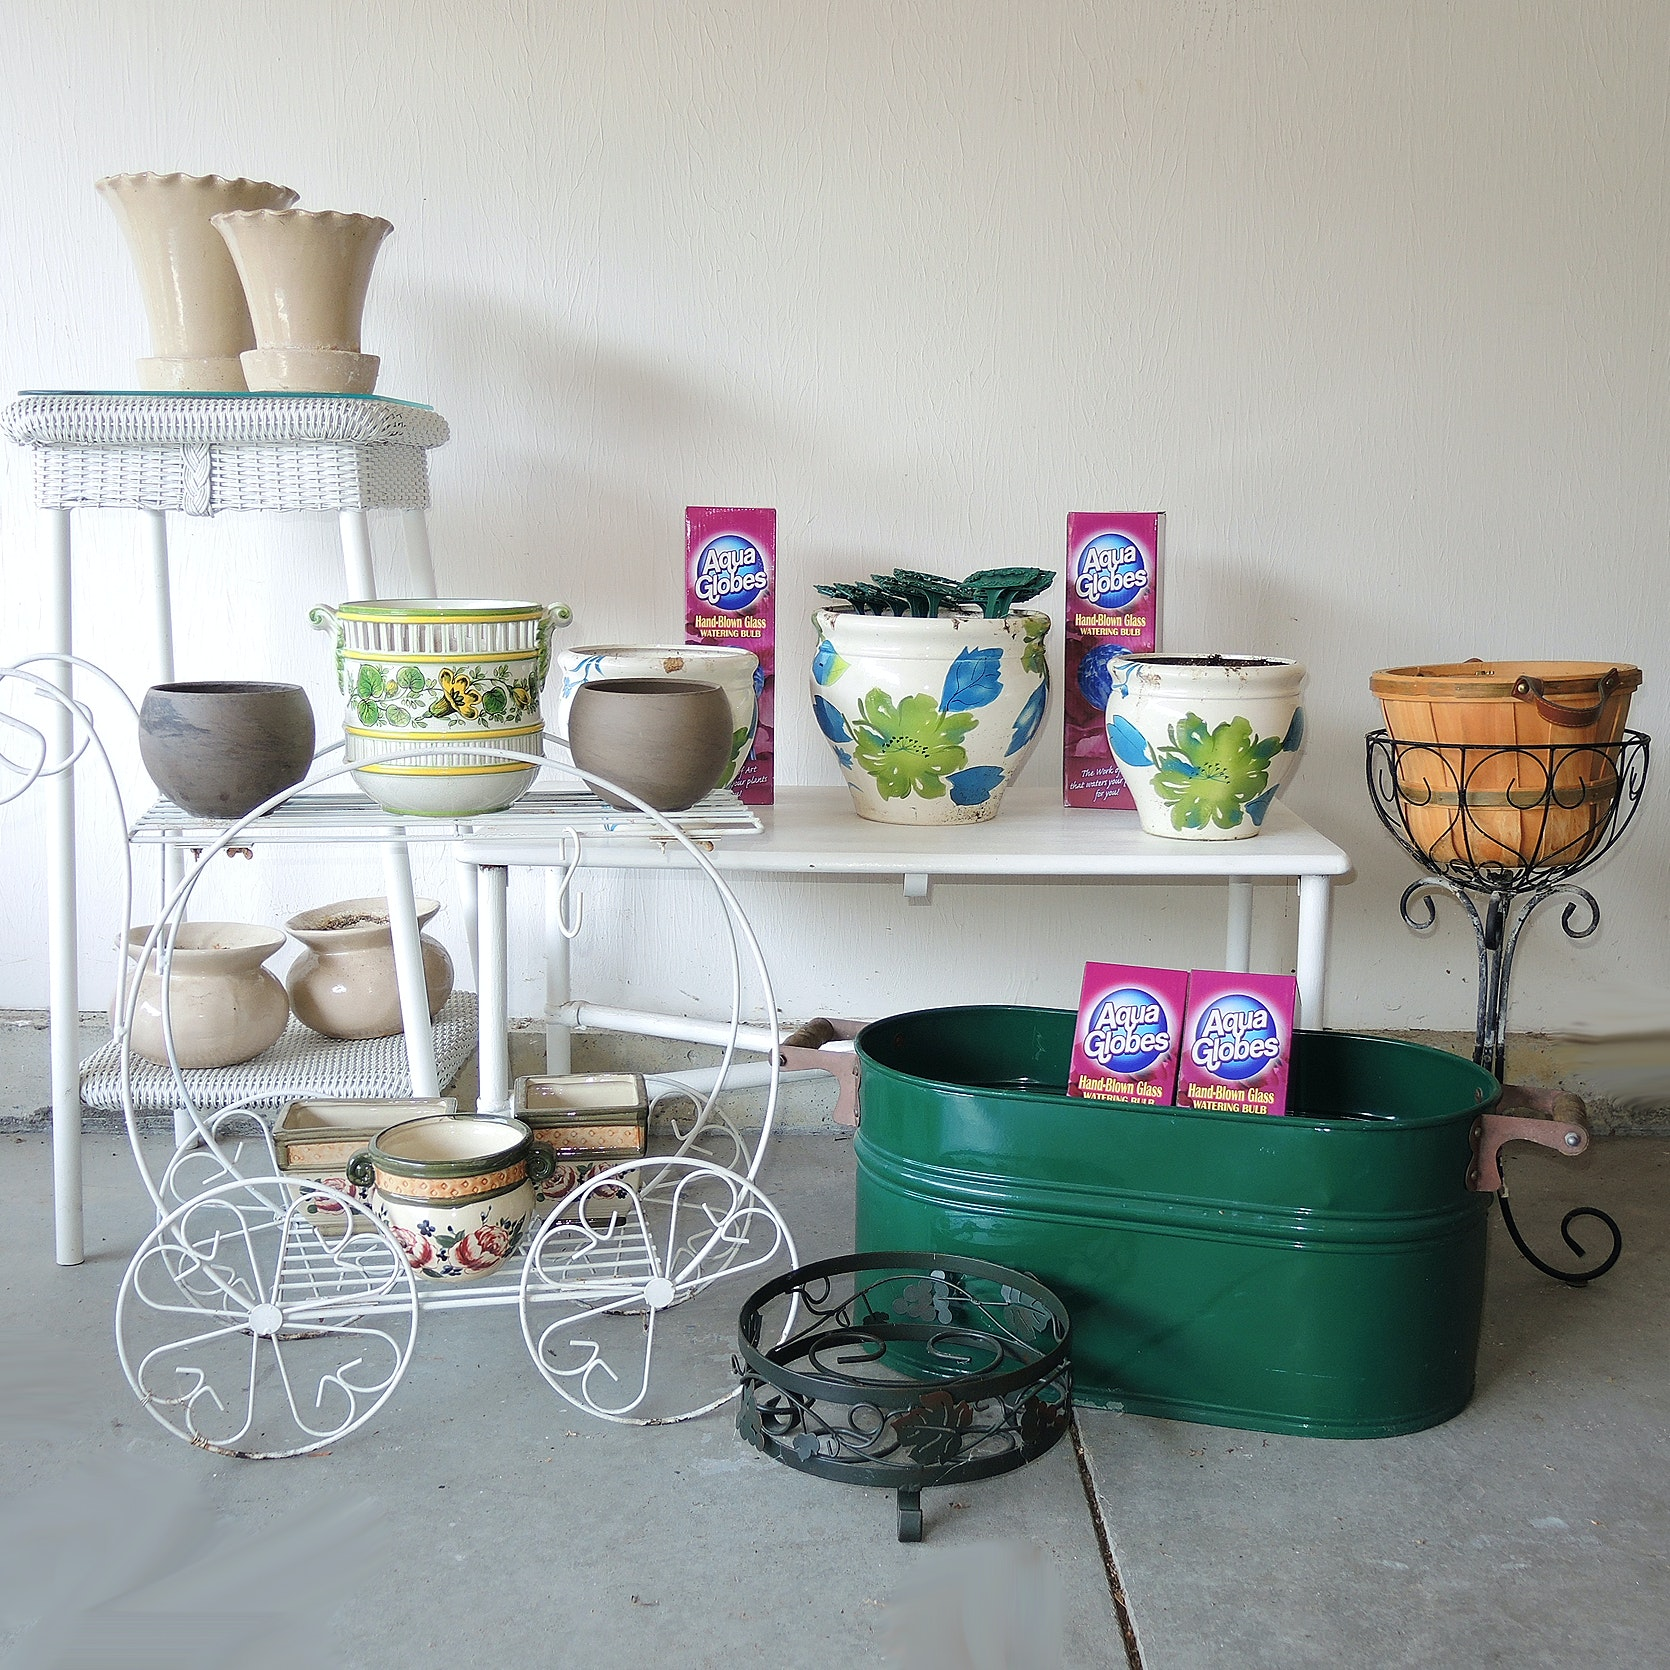 Wicker Plant Stand, Ficks Reed Table, Bybee Pottery Flower Pots and More